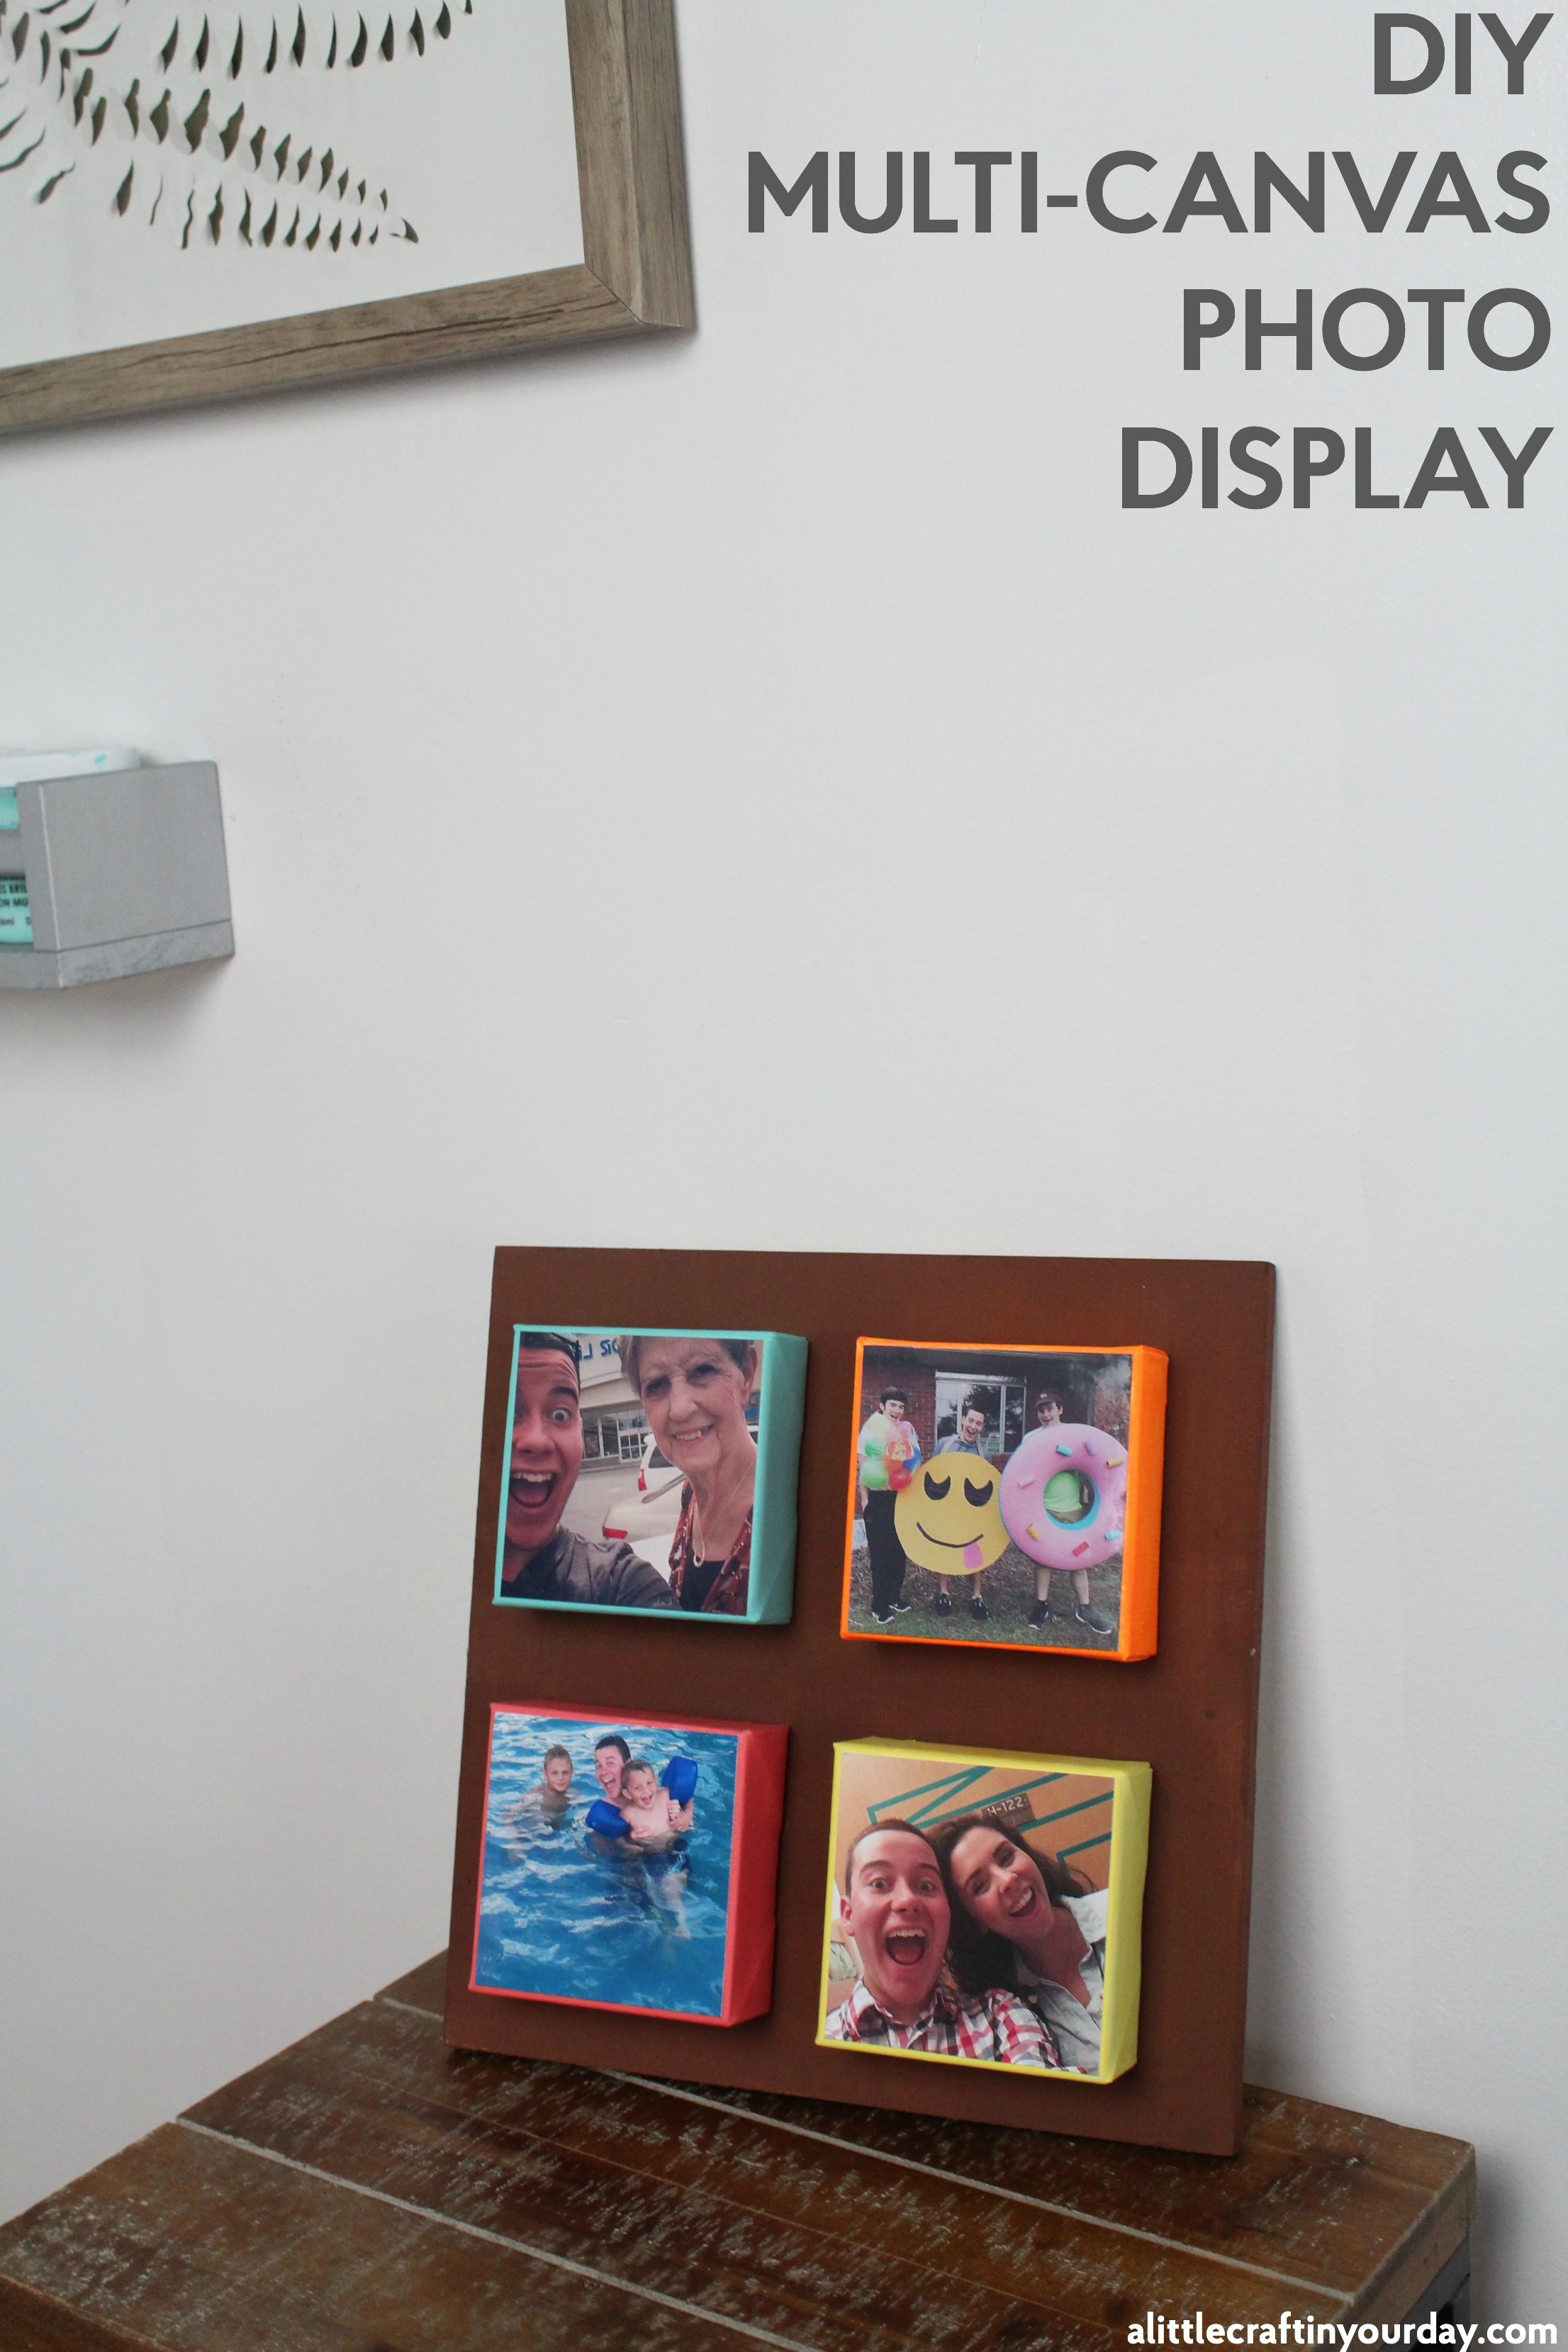 Diy multi canvas photo display a little craft in your day for Multi canvas art diy